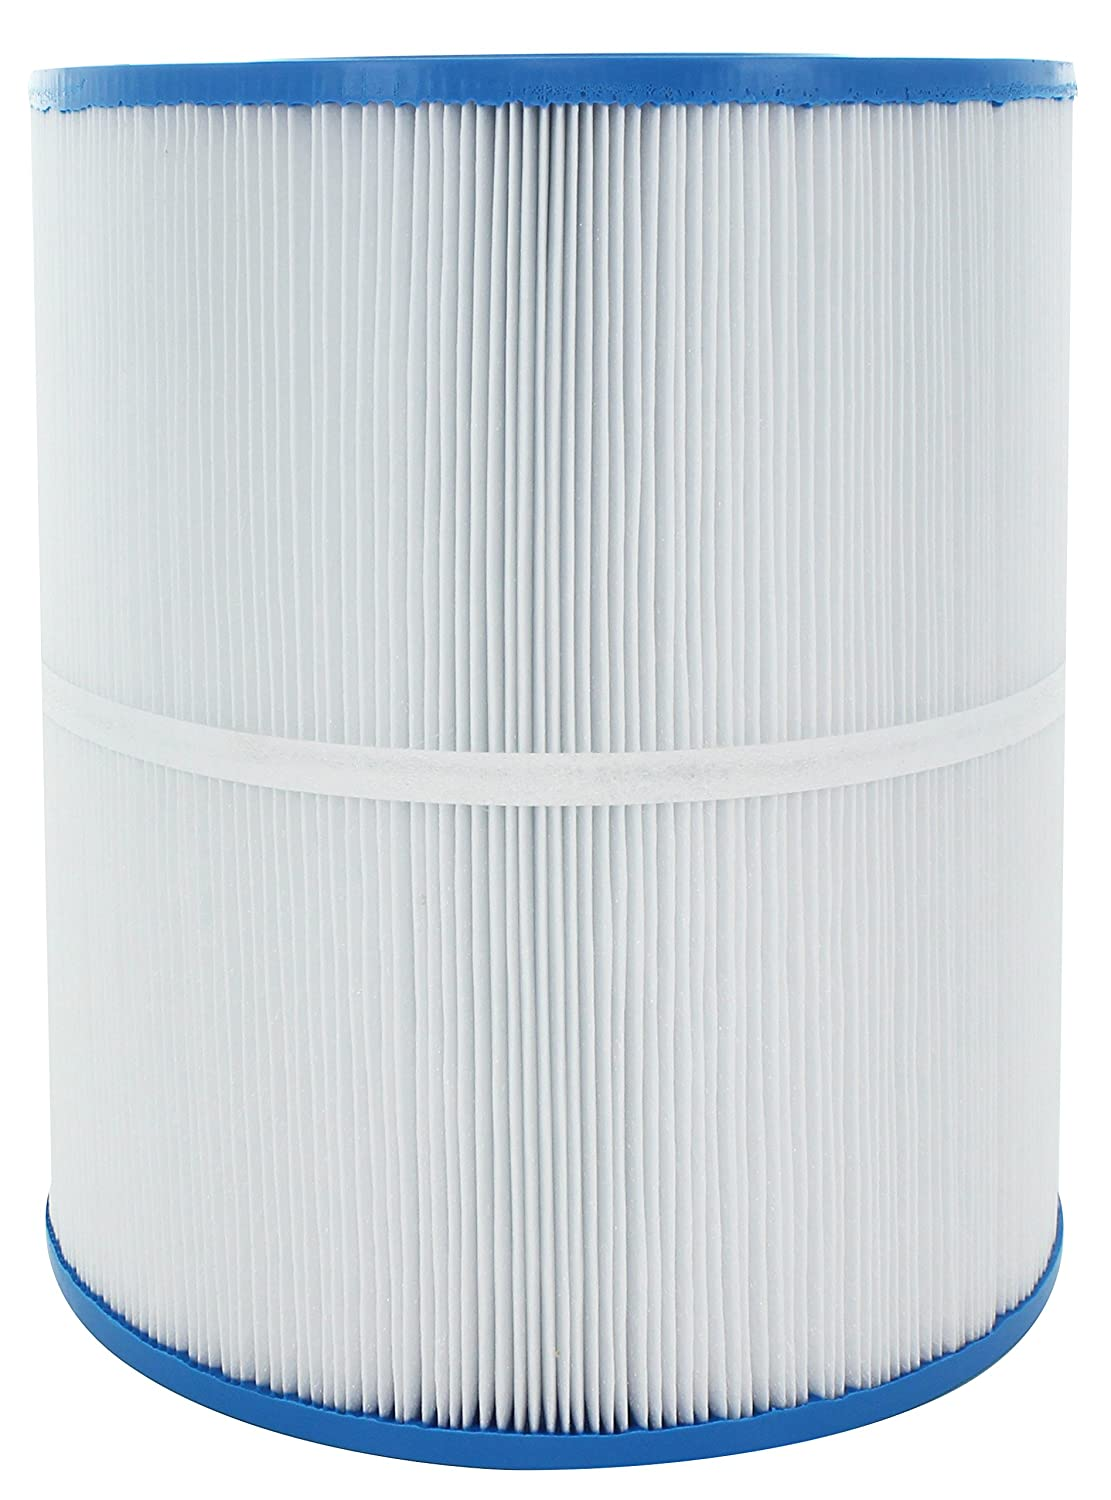 Guardian Pool Spa Filter Replaces unicel c-8465, pleatco PWK65, Filbur FC-3960 Watkins 65 Guardian Filtration Products